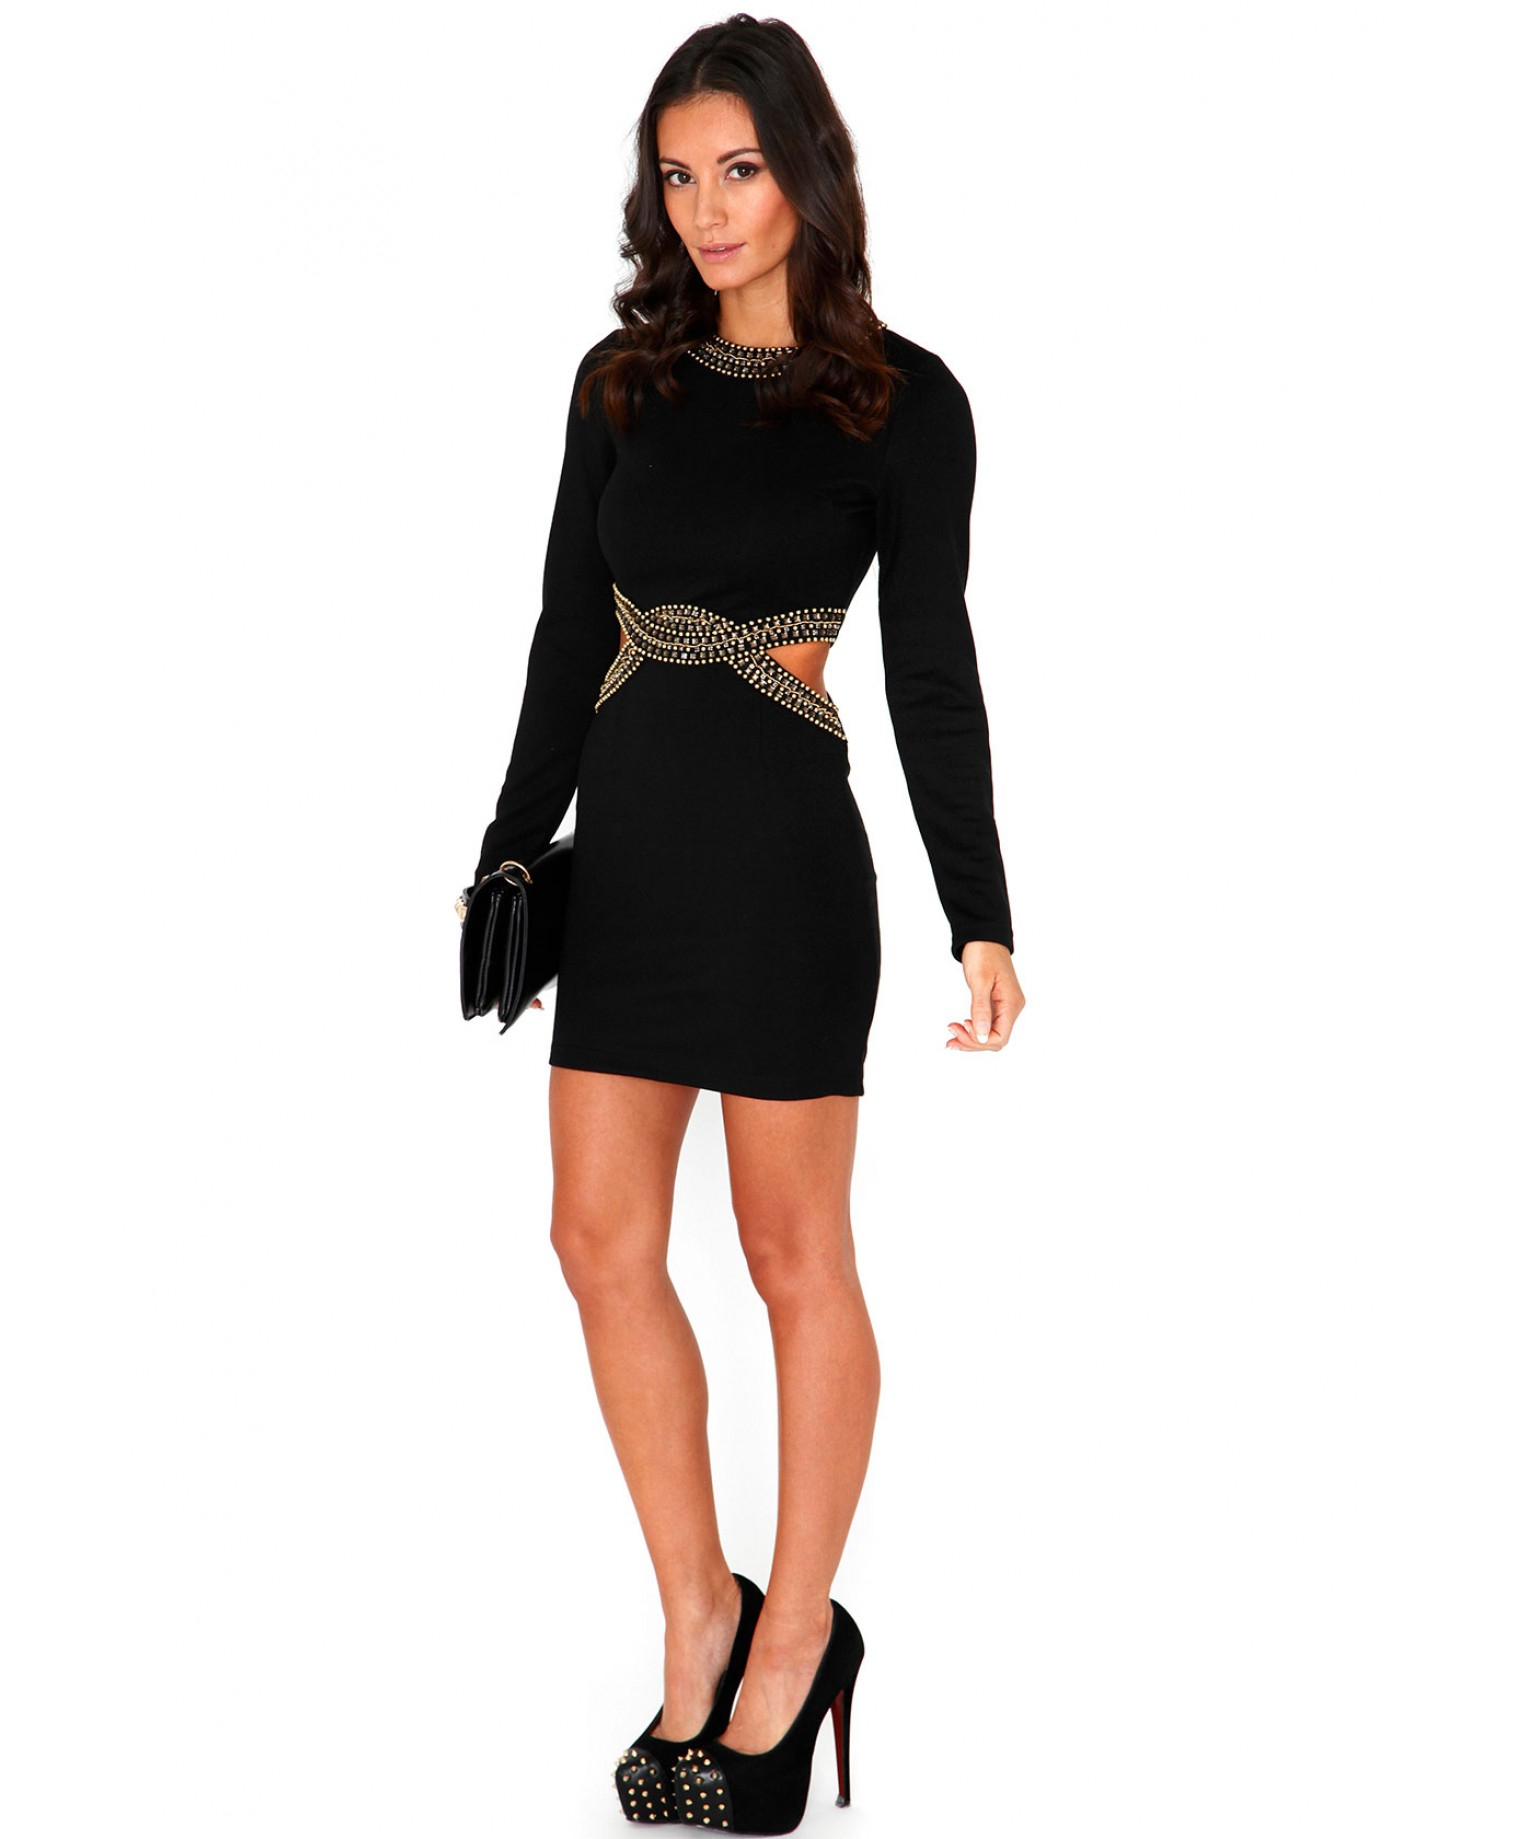 2019 year style- Sleeve Long cut out dress